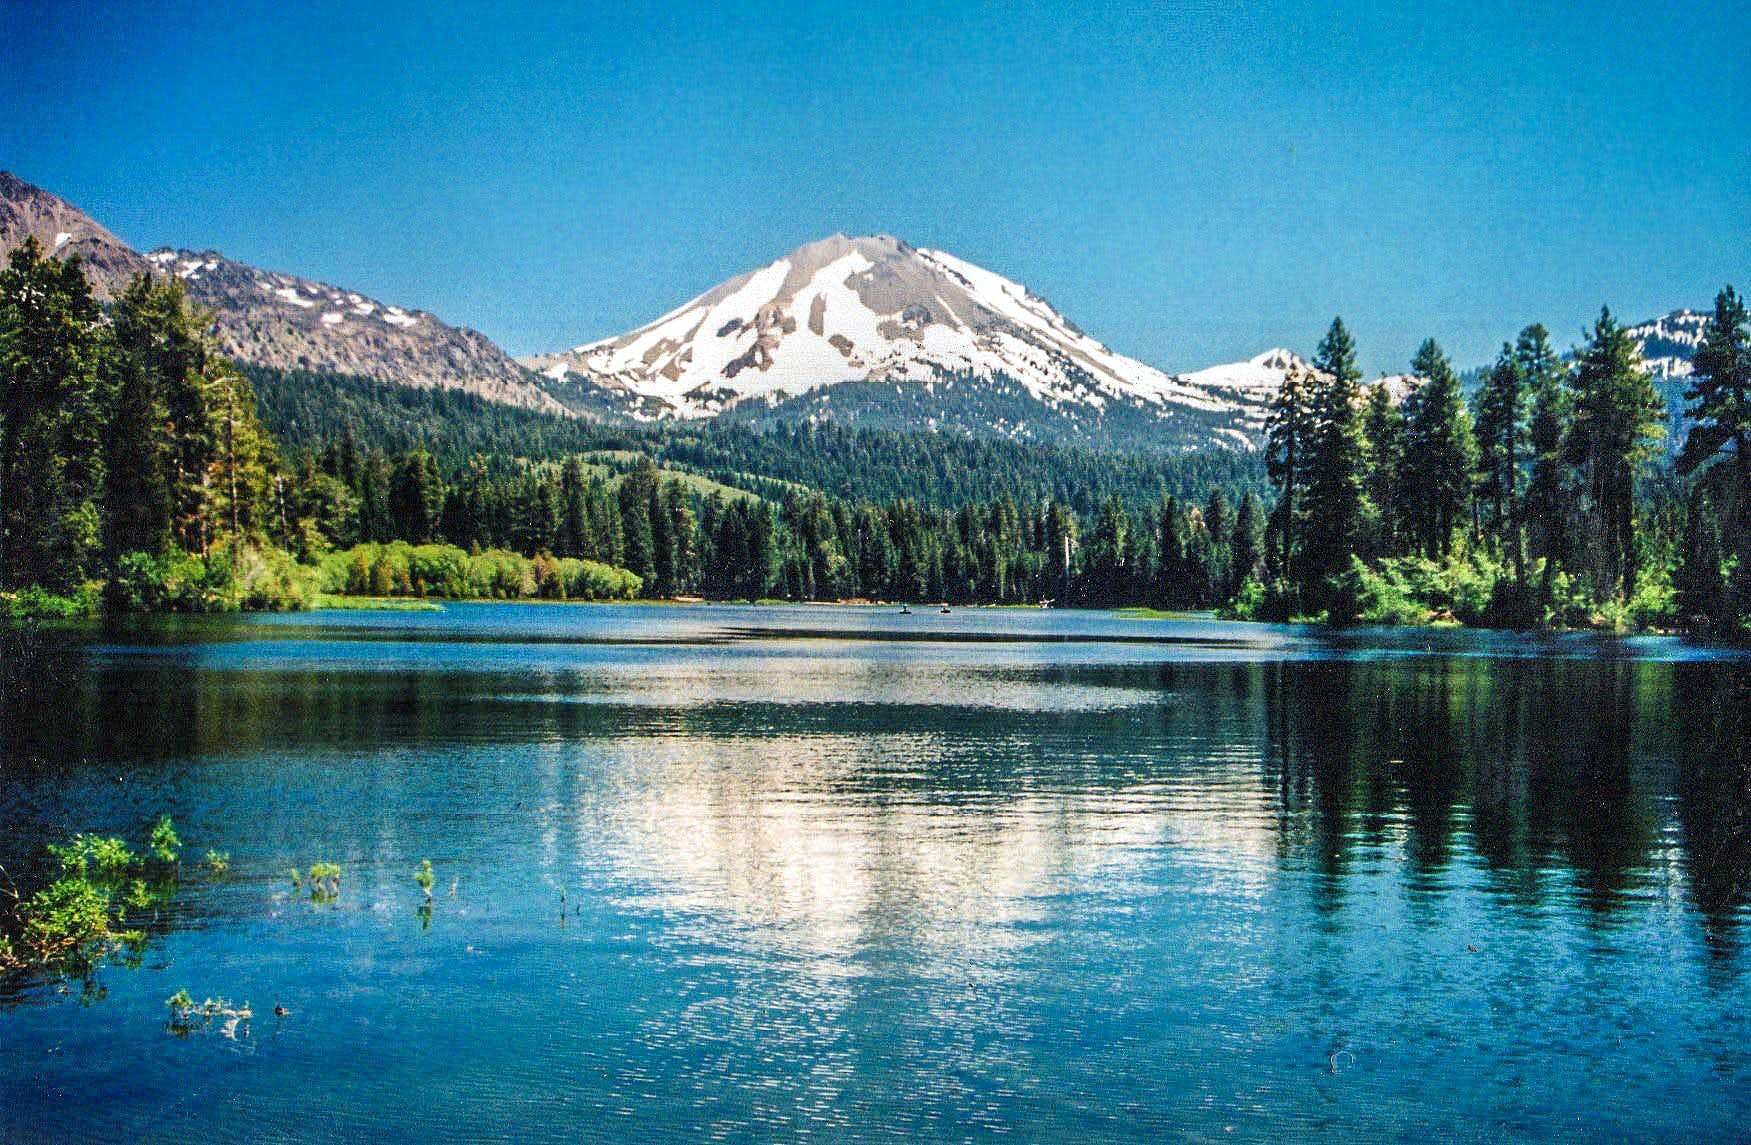 Sierra + Shasta, Lassen scans early 2000s